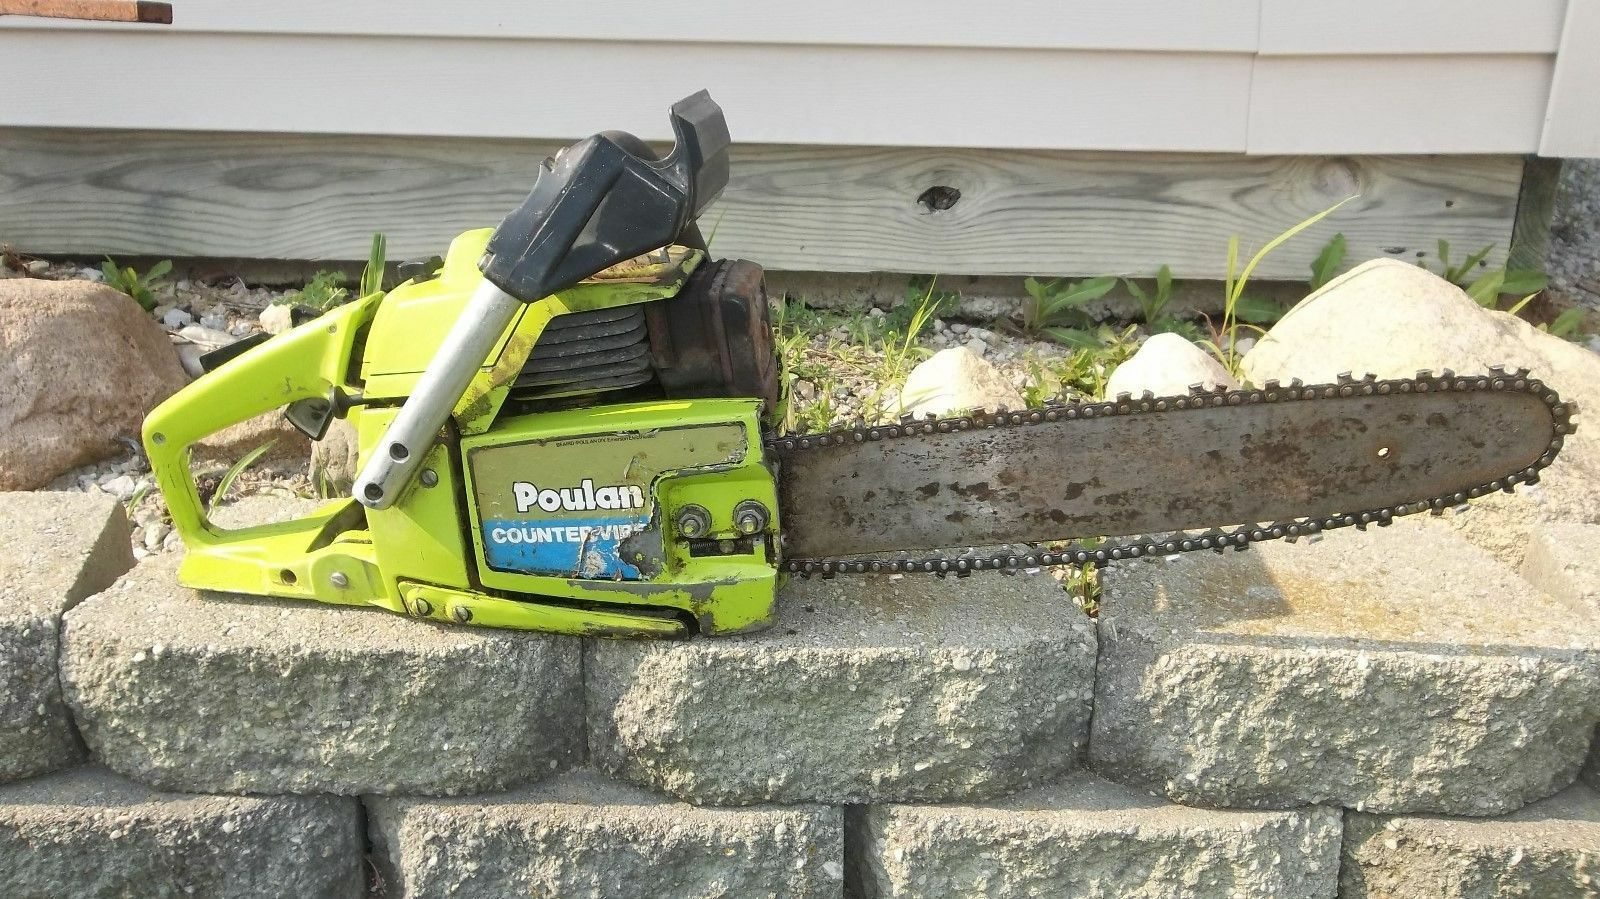 How to replace a primer bulb on a poulan chainsaw ebay how to replace a primer bulb on a poulan chainsaw greentooth Gallery